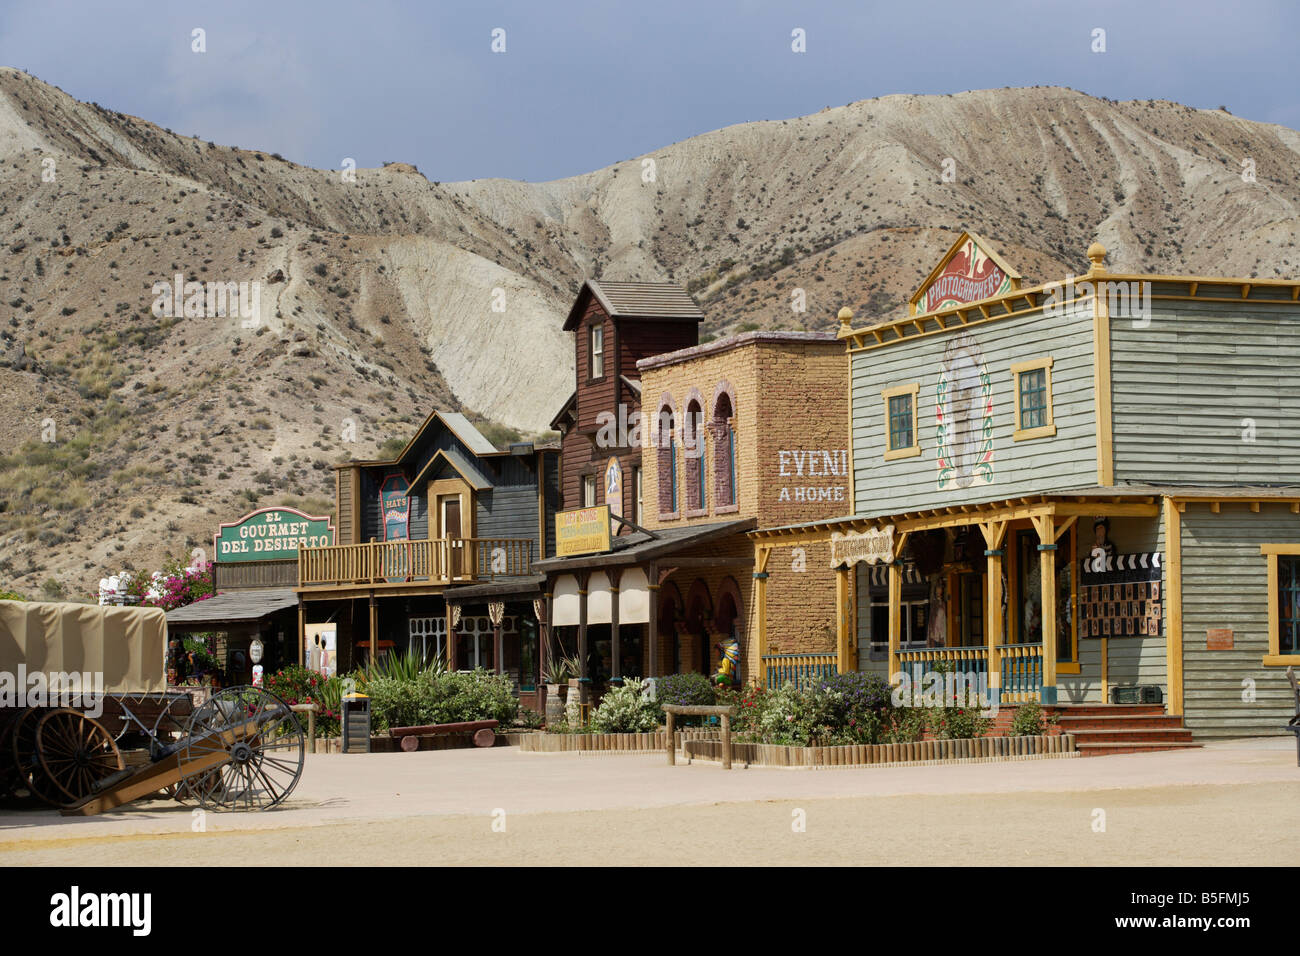 Spaghetti Western film set at Oasys Mini Hollywood, Tabernas, Almeria, Spain - Stock Image